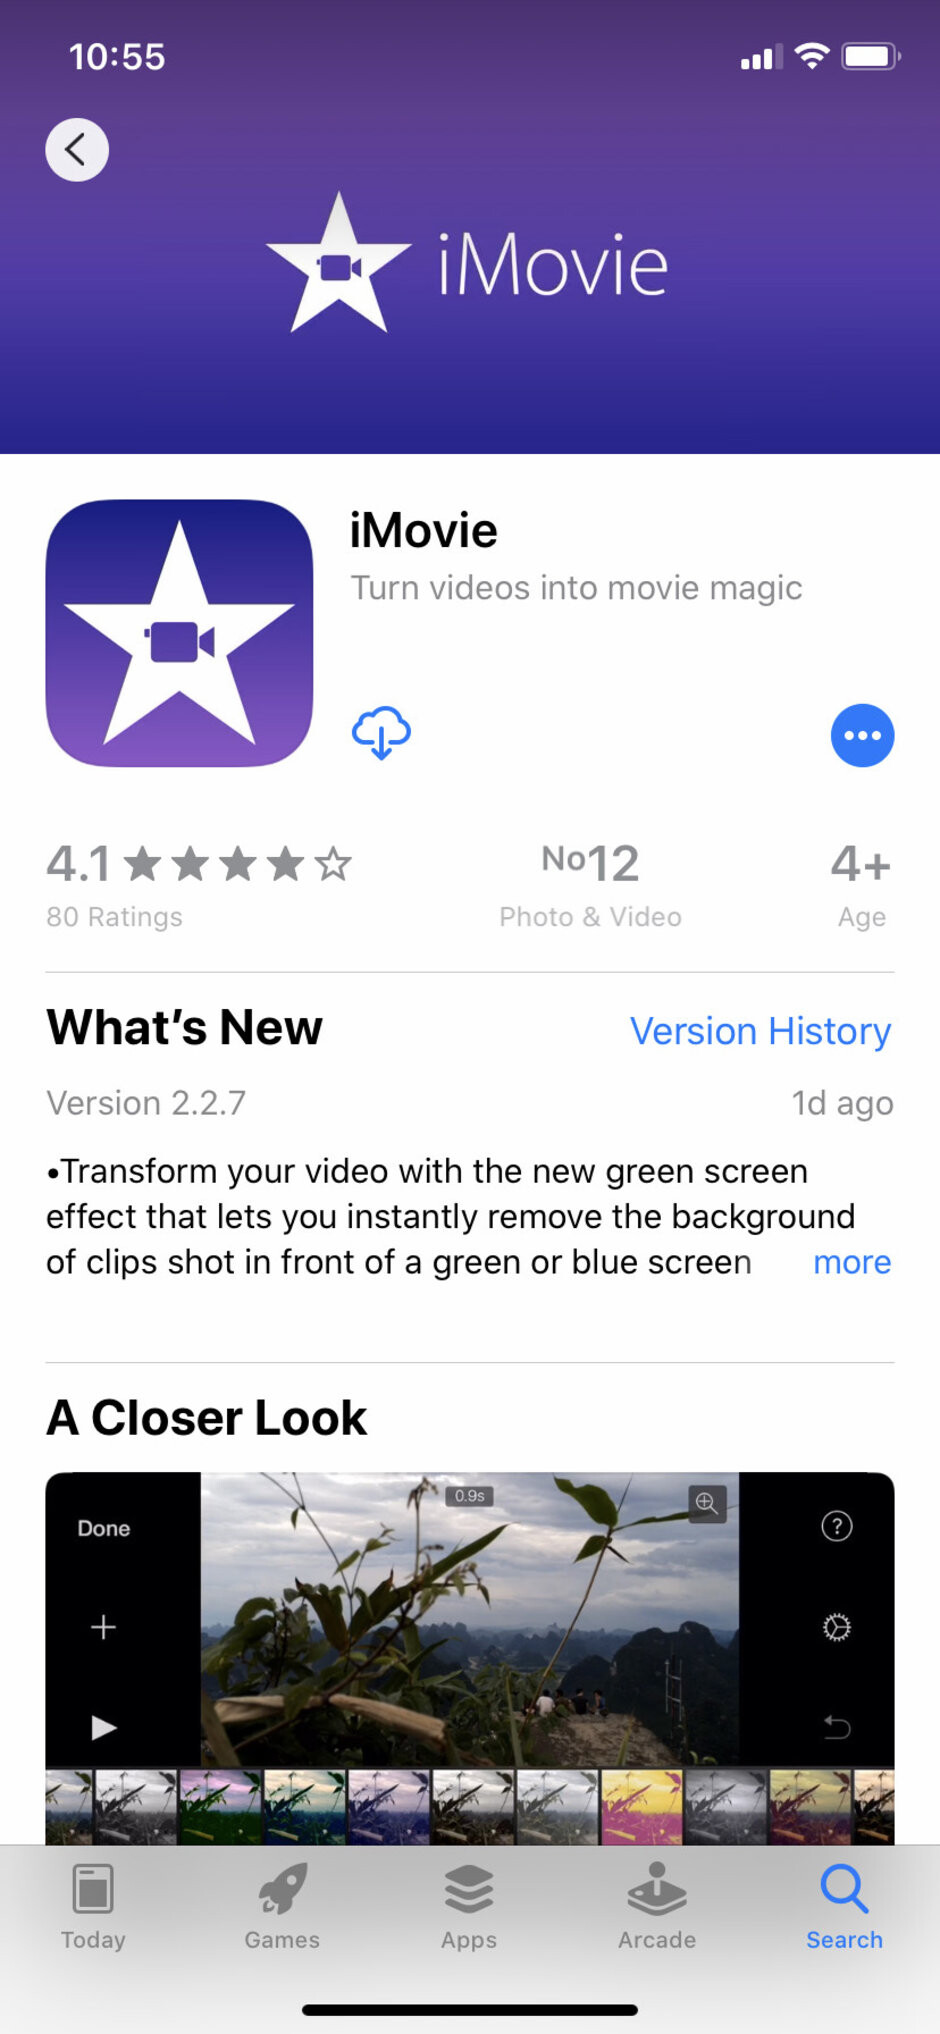 iMovie for iOS now has a green screen feature